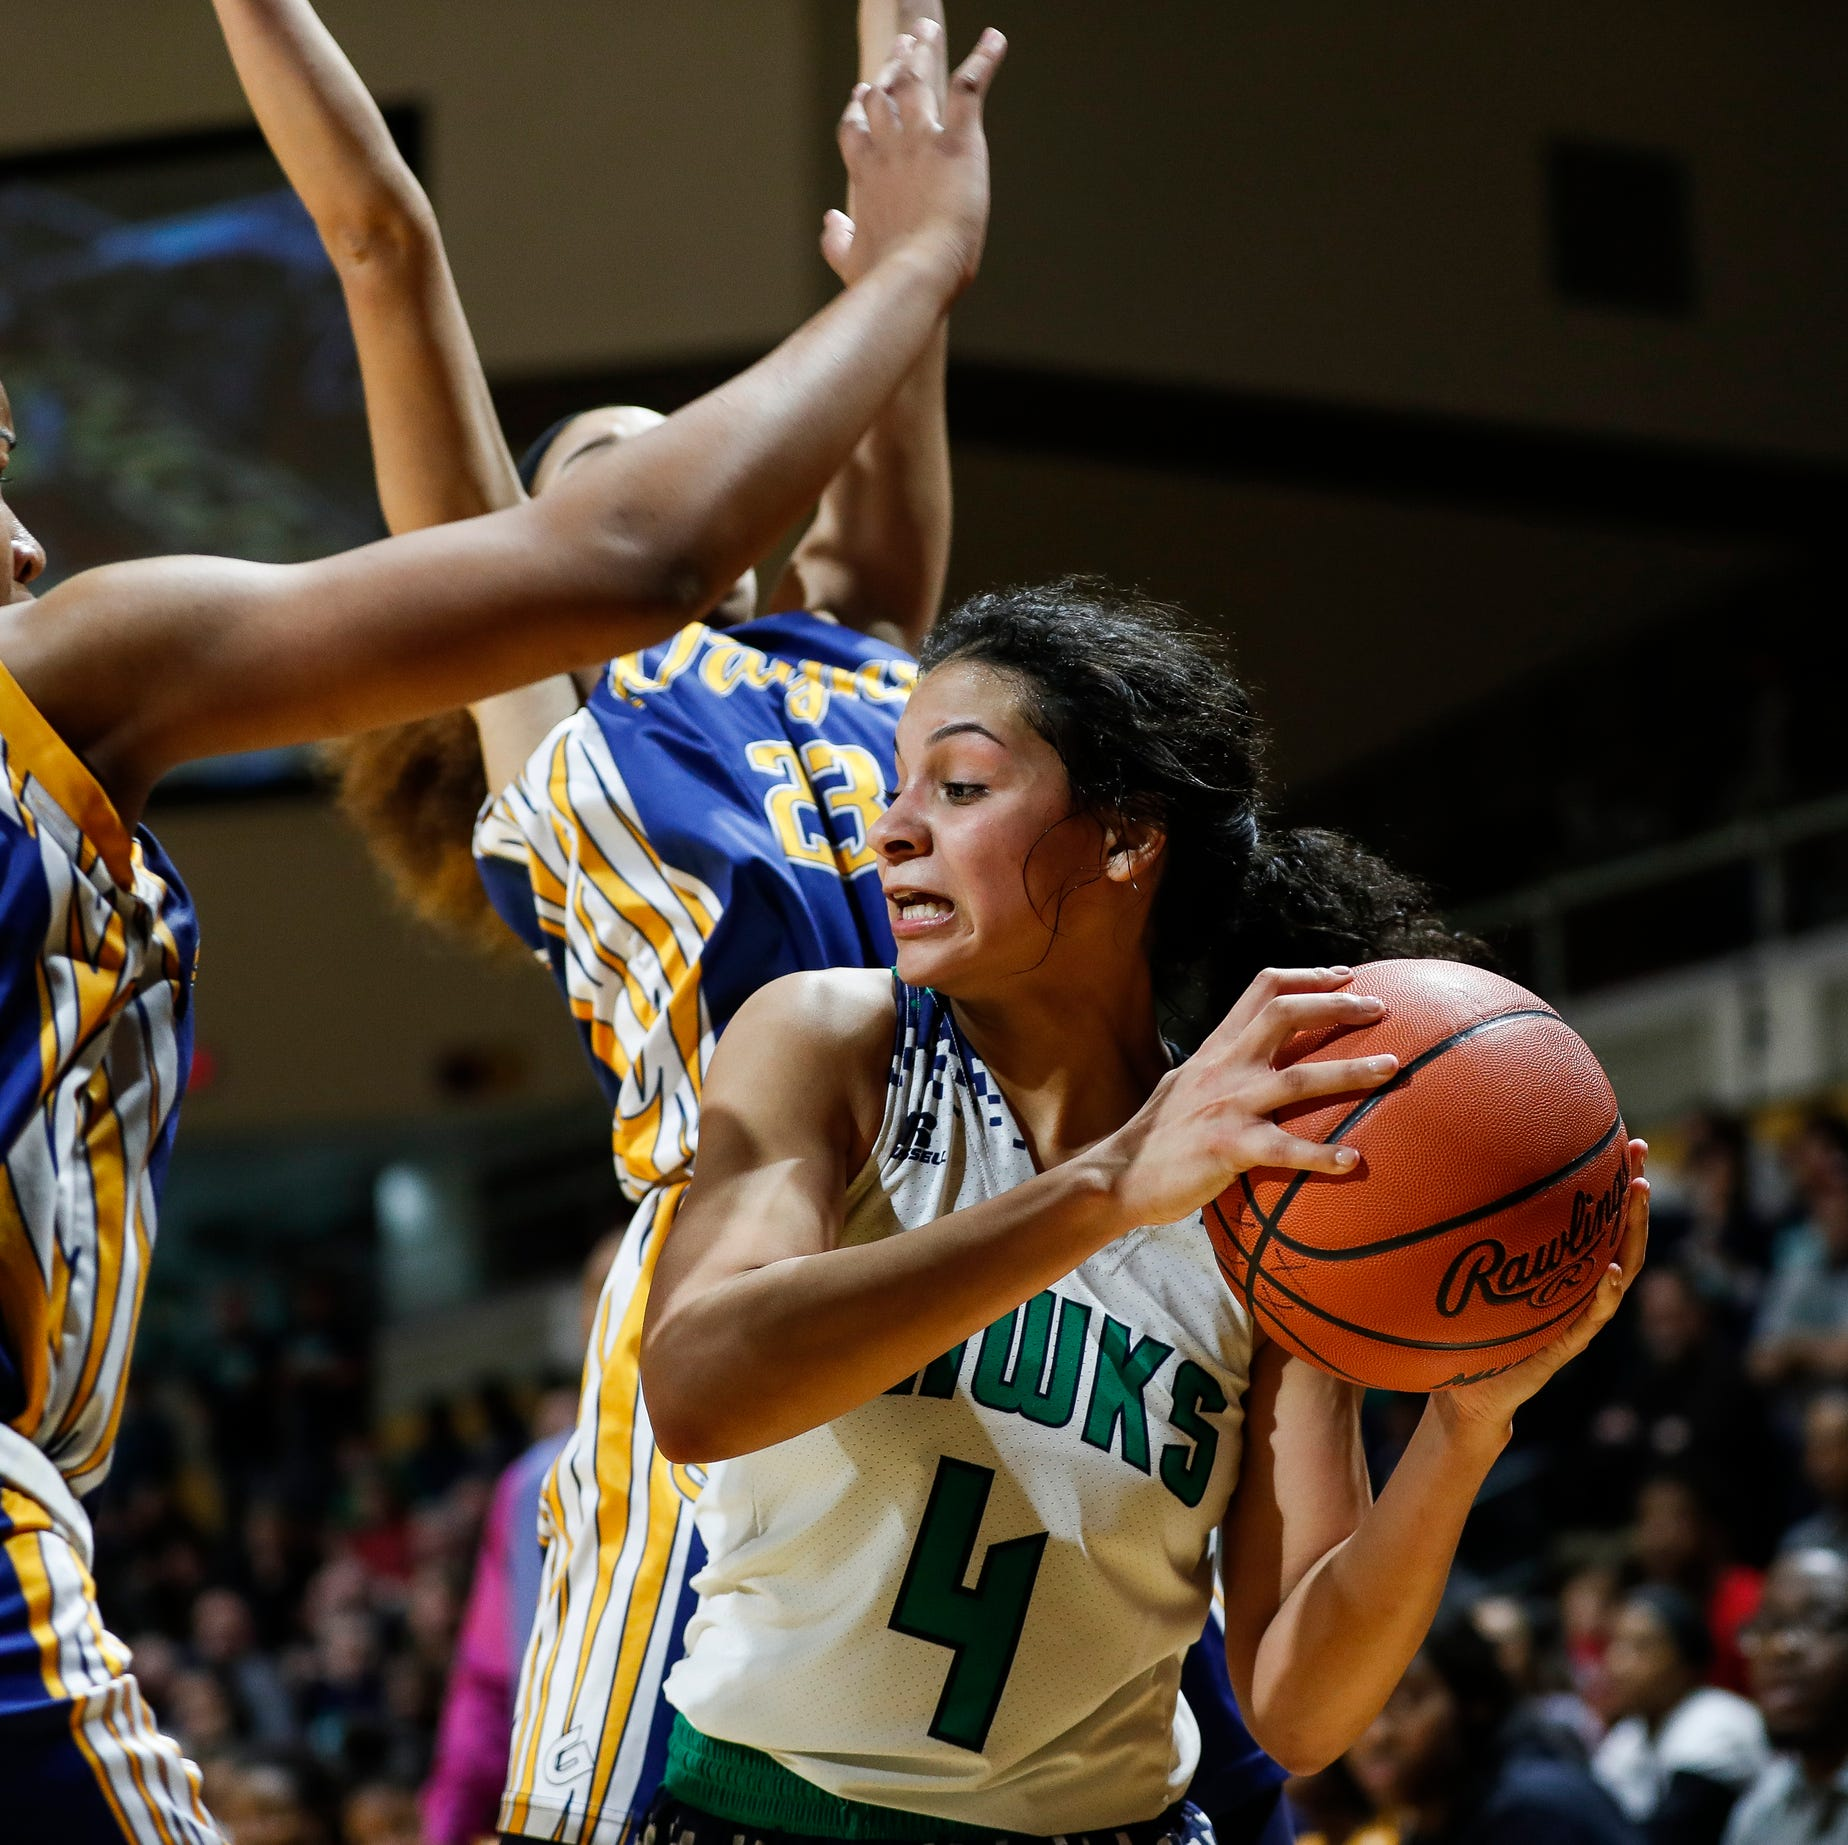 Wayne Memorial girls basketball falls to Saginaw Heritage in state semifinals